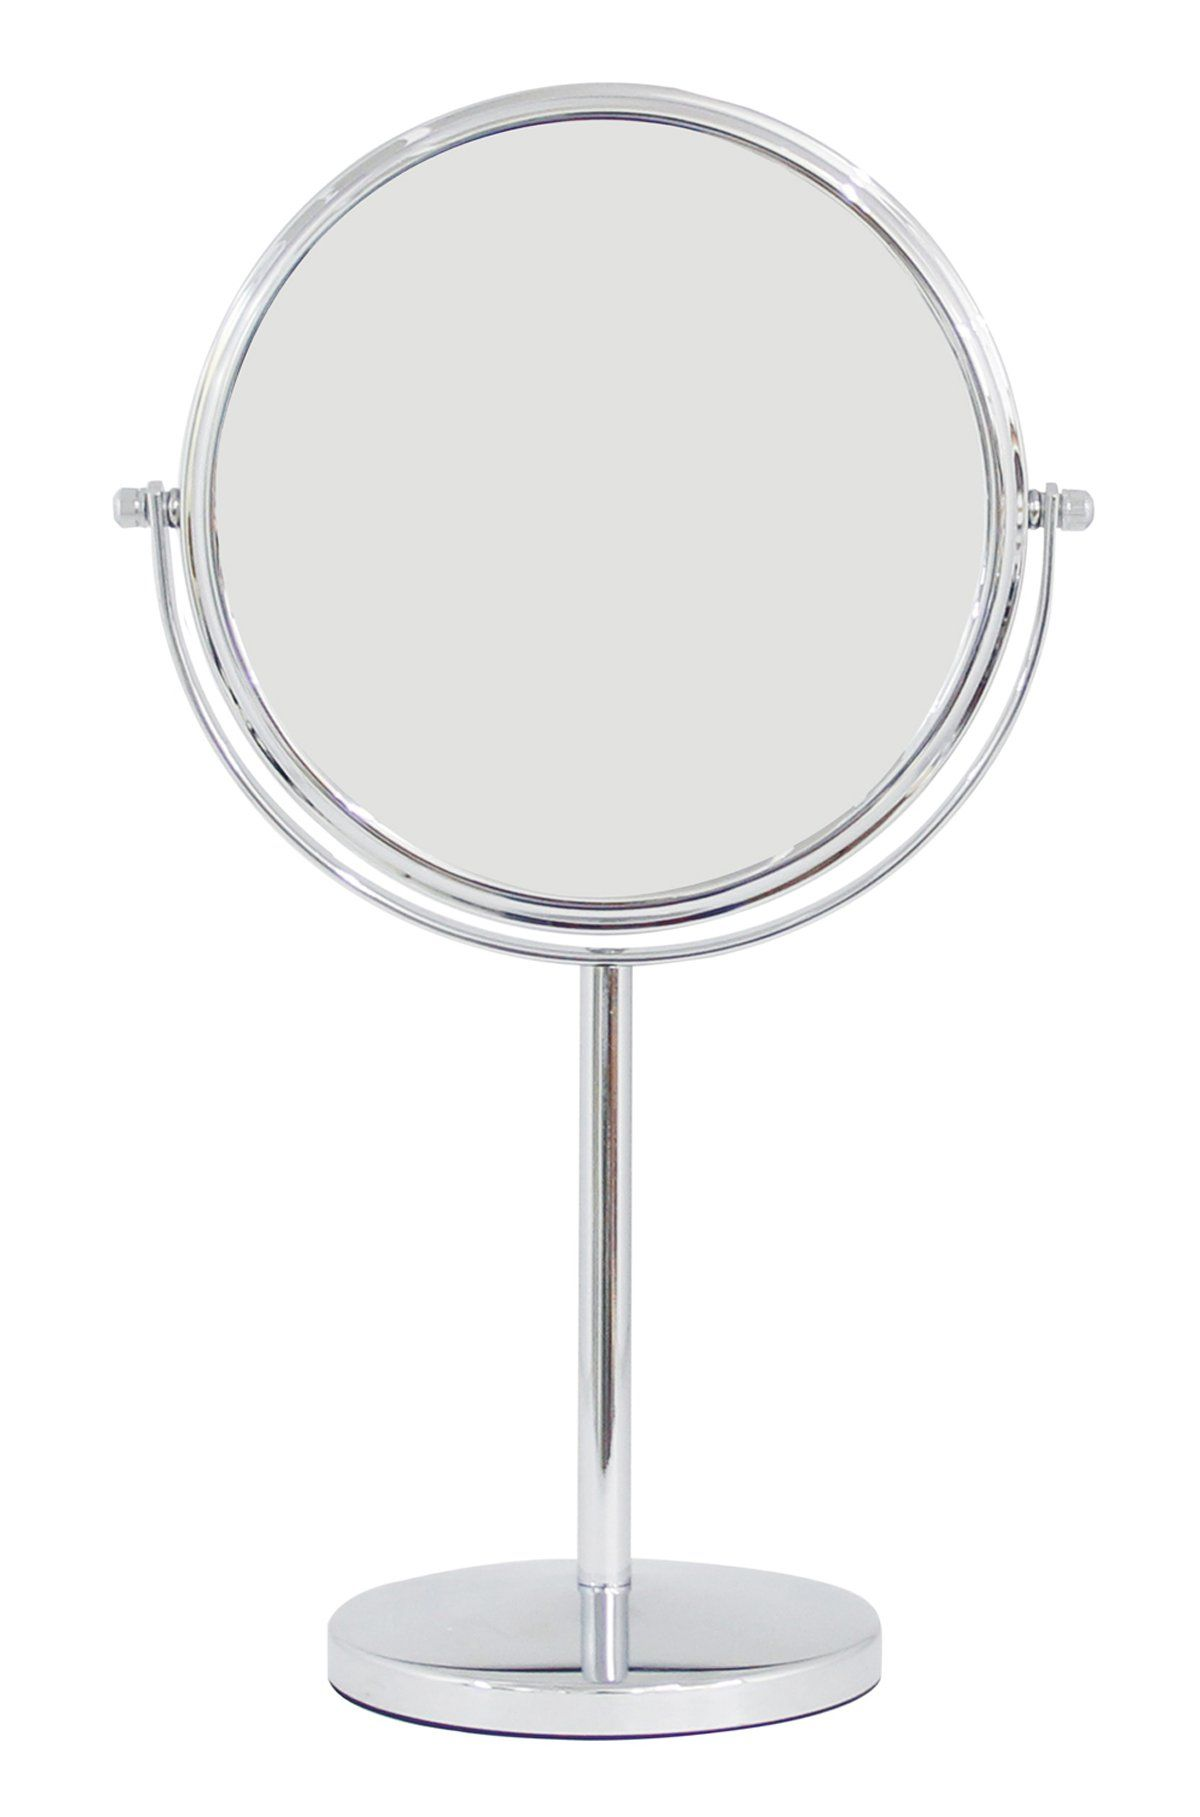 Two Sided 1x 3x Countertop Tabletop Vanity Makeup Mirror